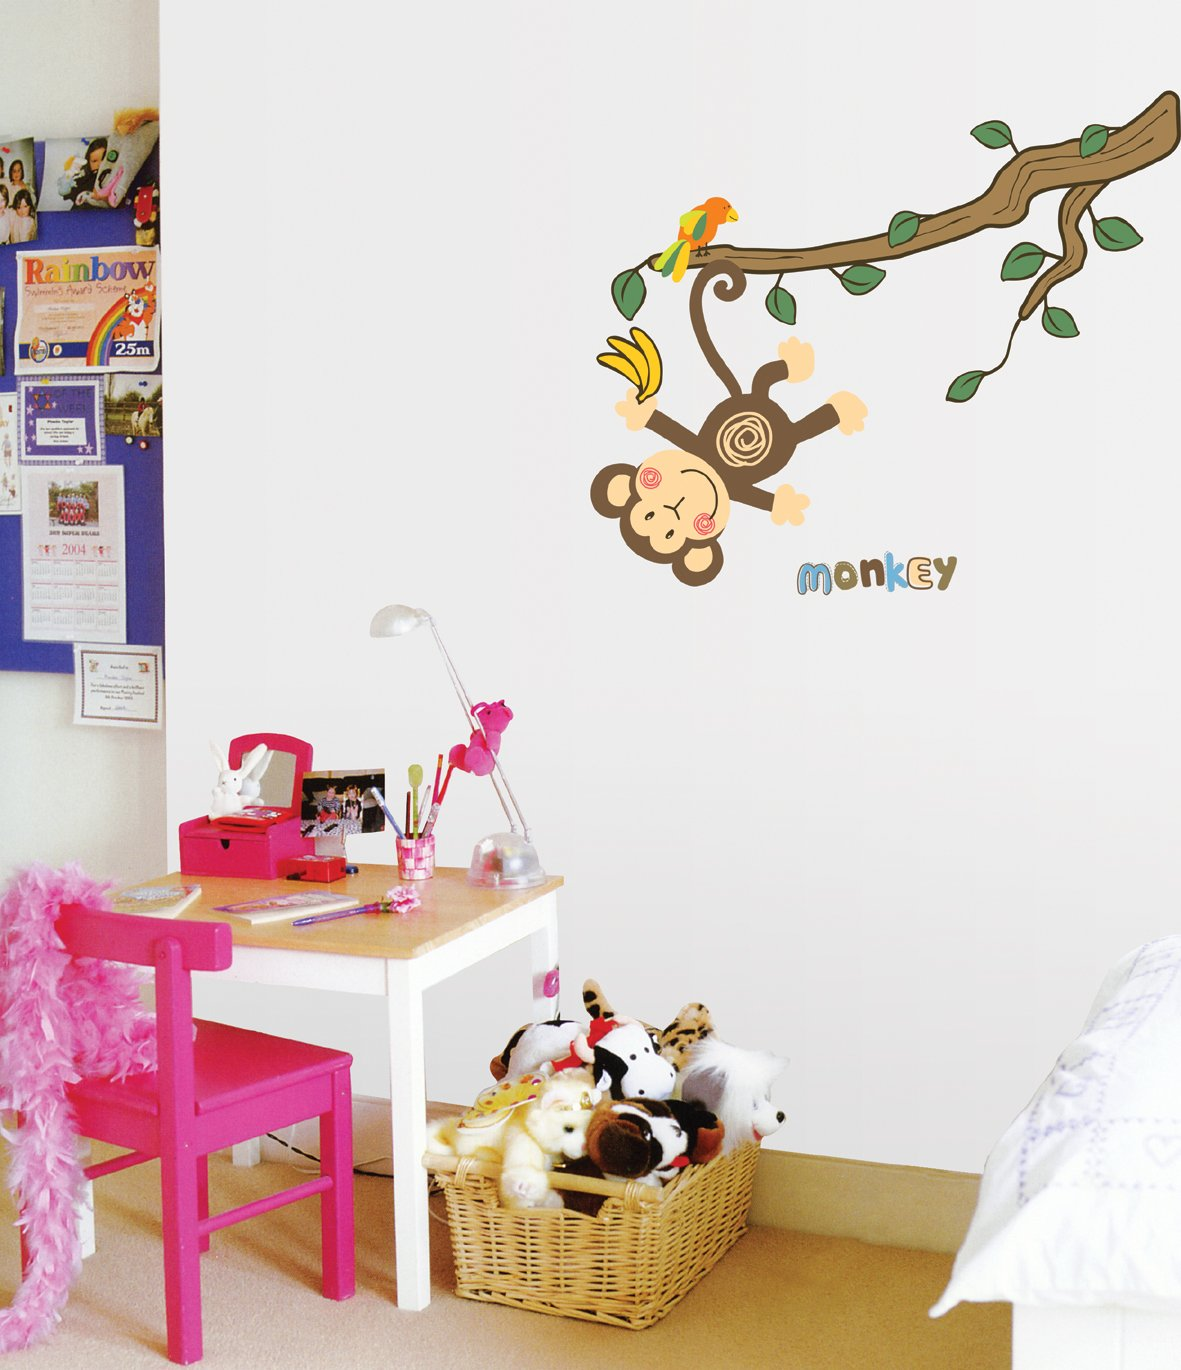 amazon com monkey hanging over trees nursery kids room wall art amazon com monkey hanging over trees nursery kids room wall art sticker decal home kitchen